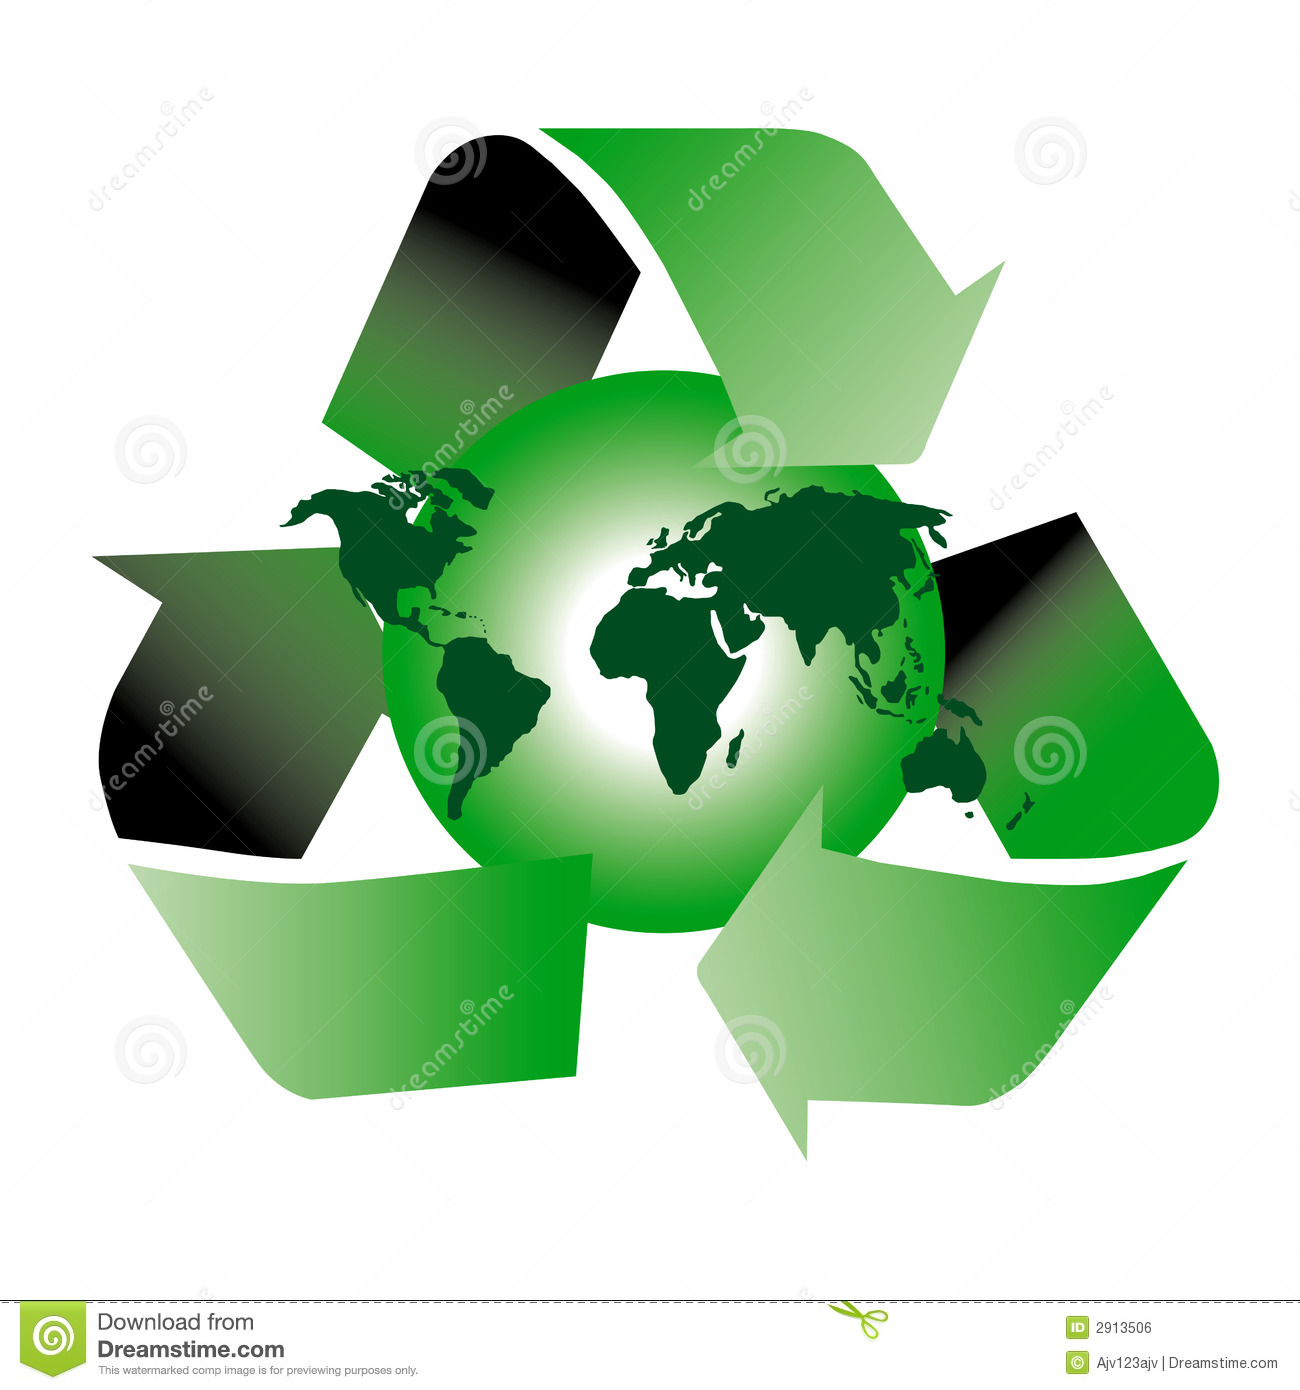 Cool recycle logo cool recycle sy buycottarizona Choice Image